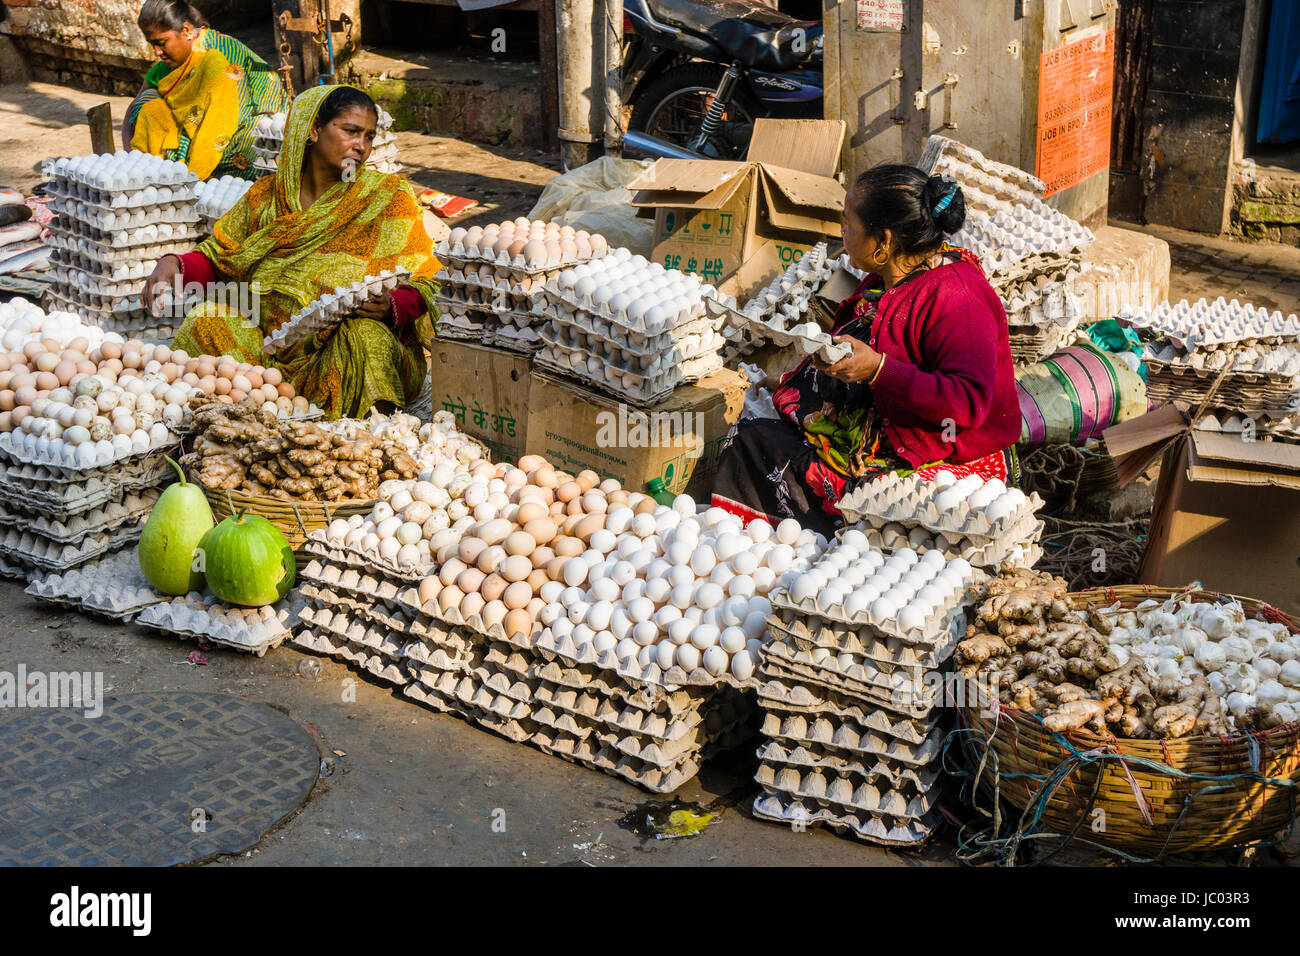 Two women are selling eggs on a busy vegetable market street in the suburb Sealdah - Stock Image